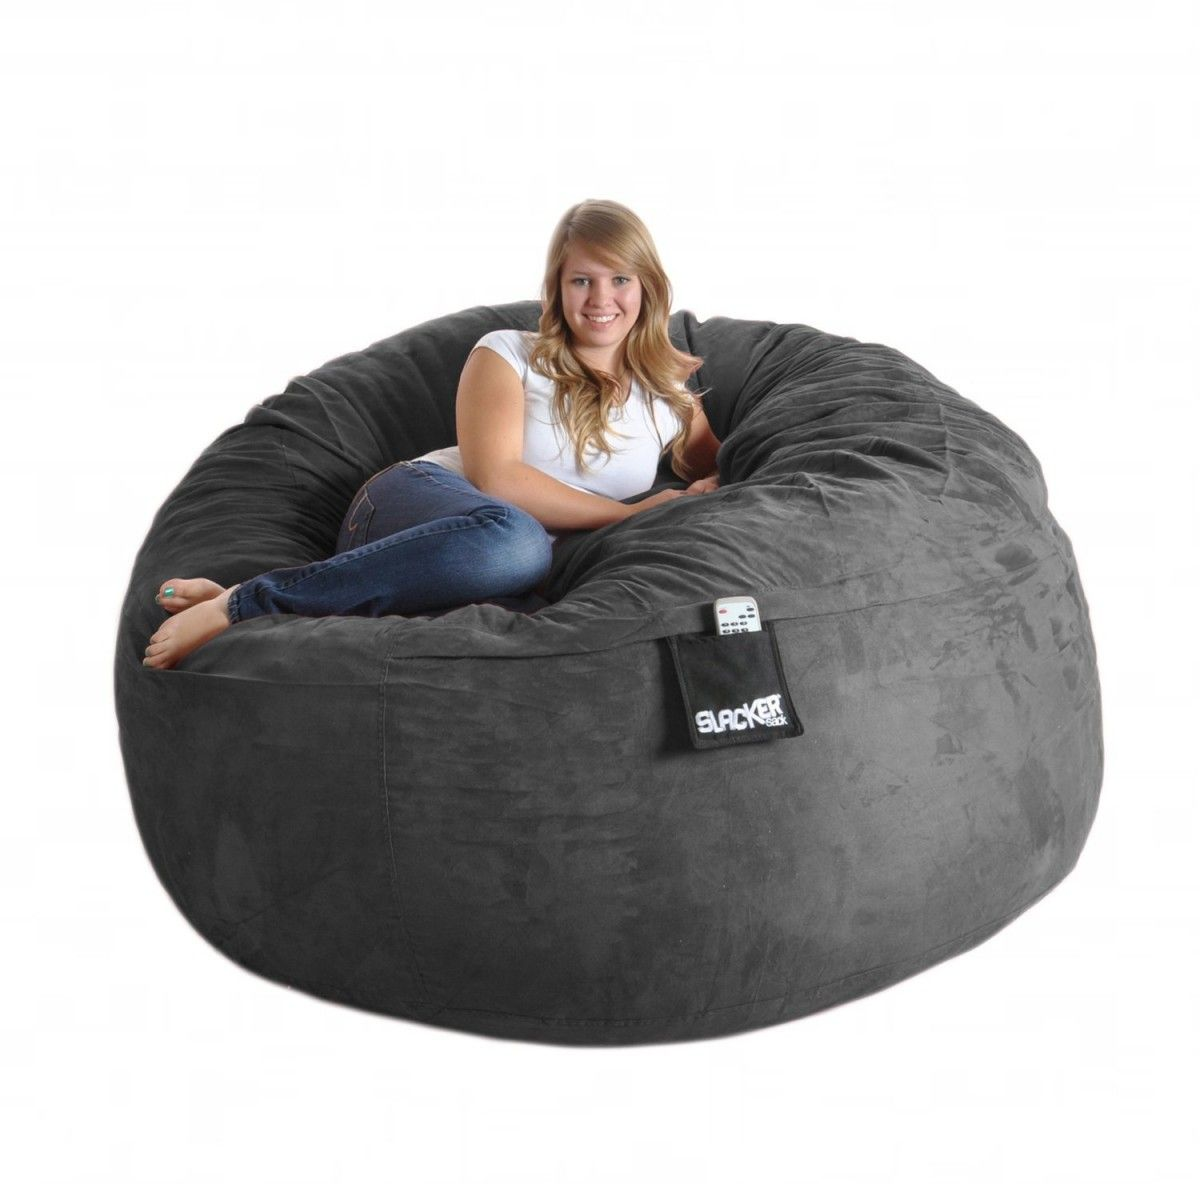 making oversized bean bag chairs foam padding http www. Black Bedroom Furniture Sets. Home Design Ideas